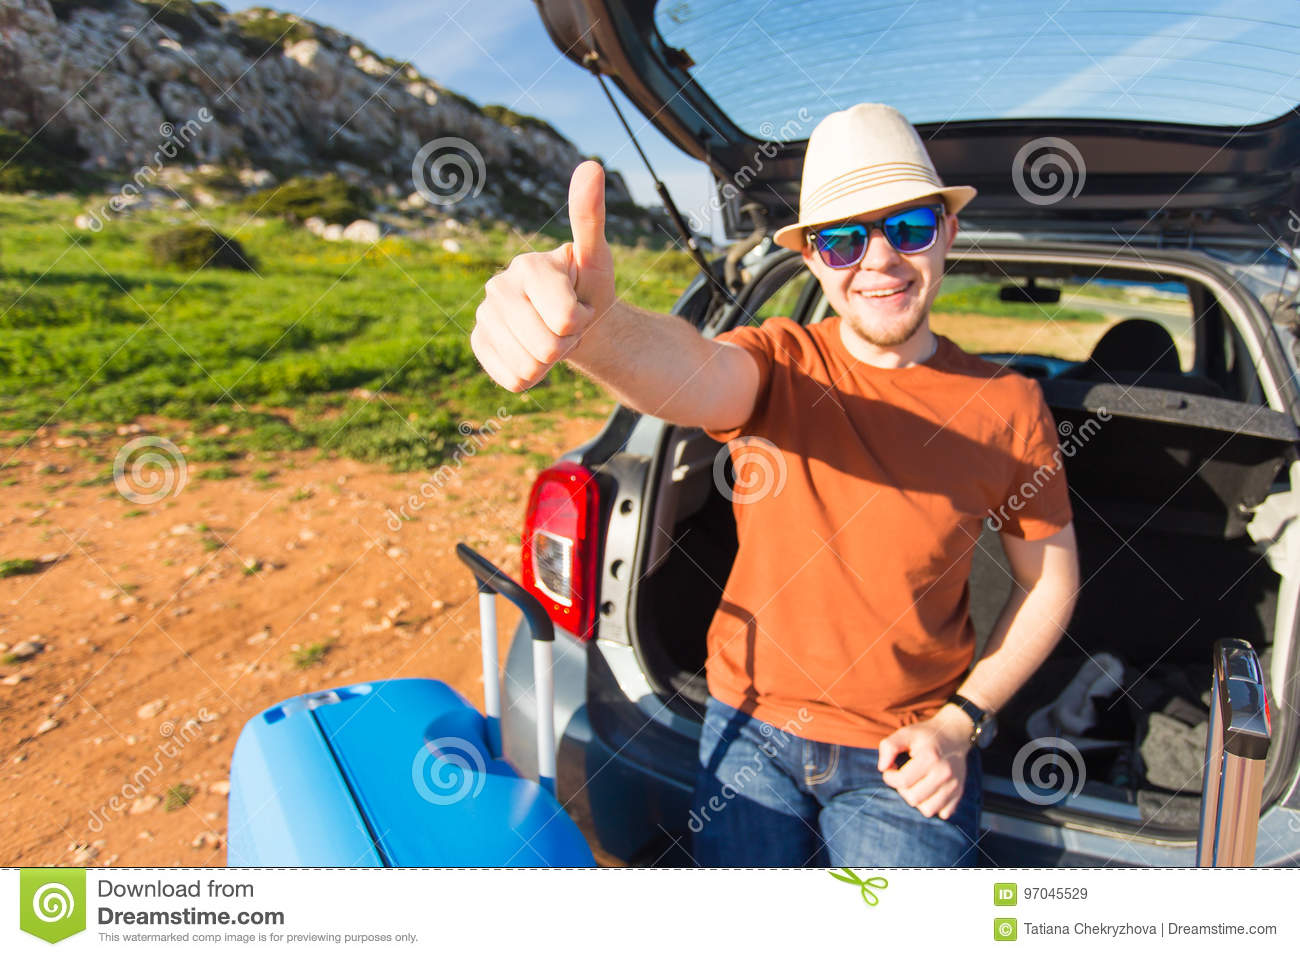 Download Funny Happy Man Going On Summer Vacation Car Travel Concept Stock Image